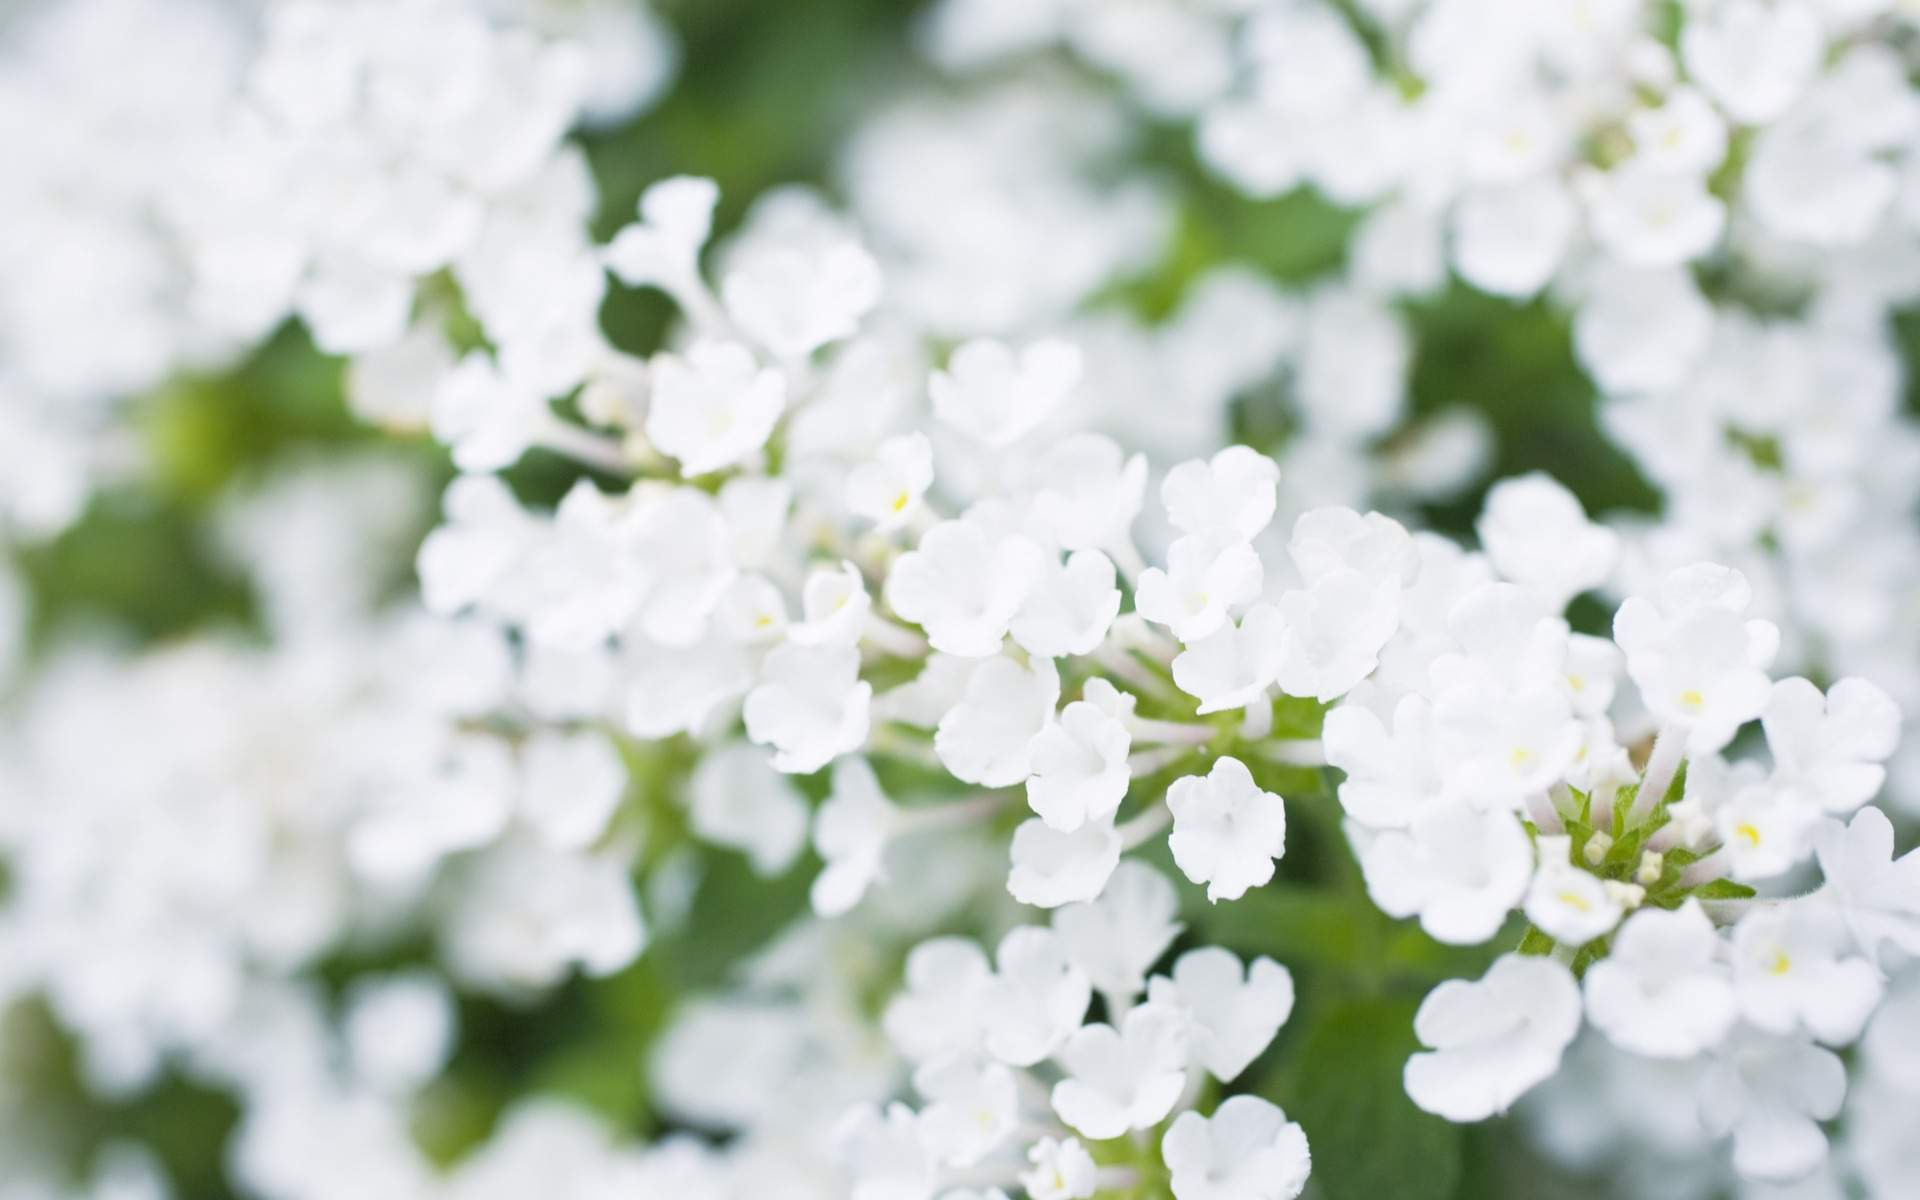 White Flowers Wallpapers High Quality Download Free